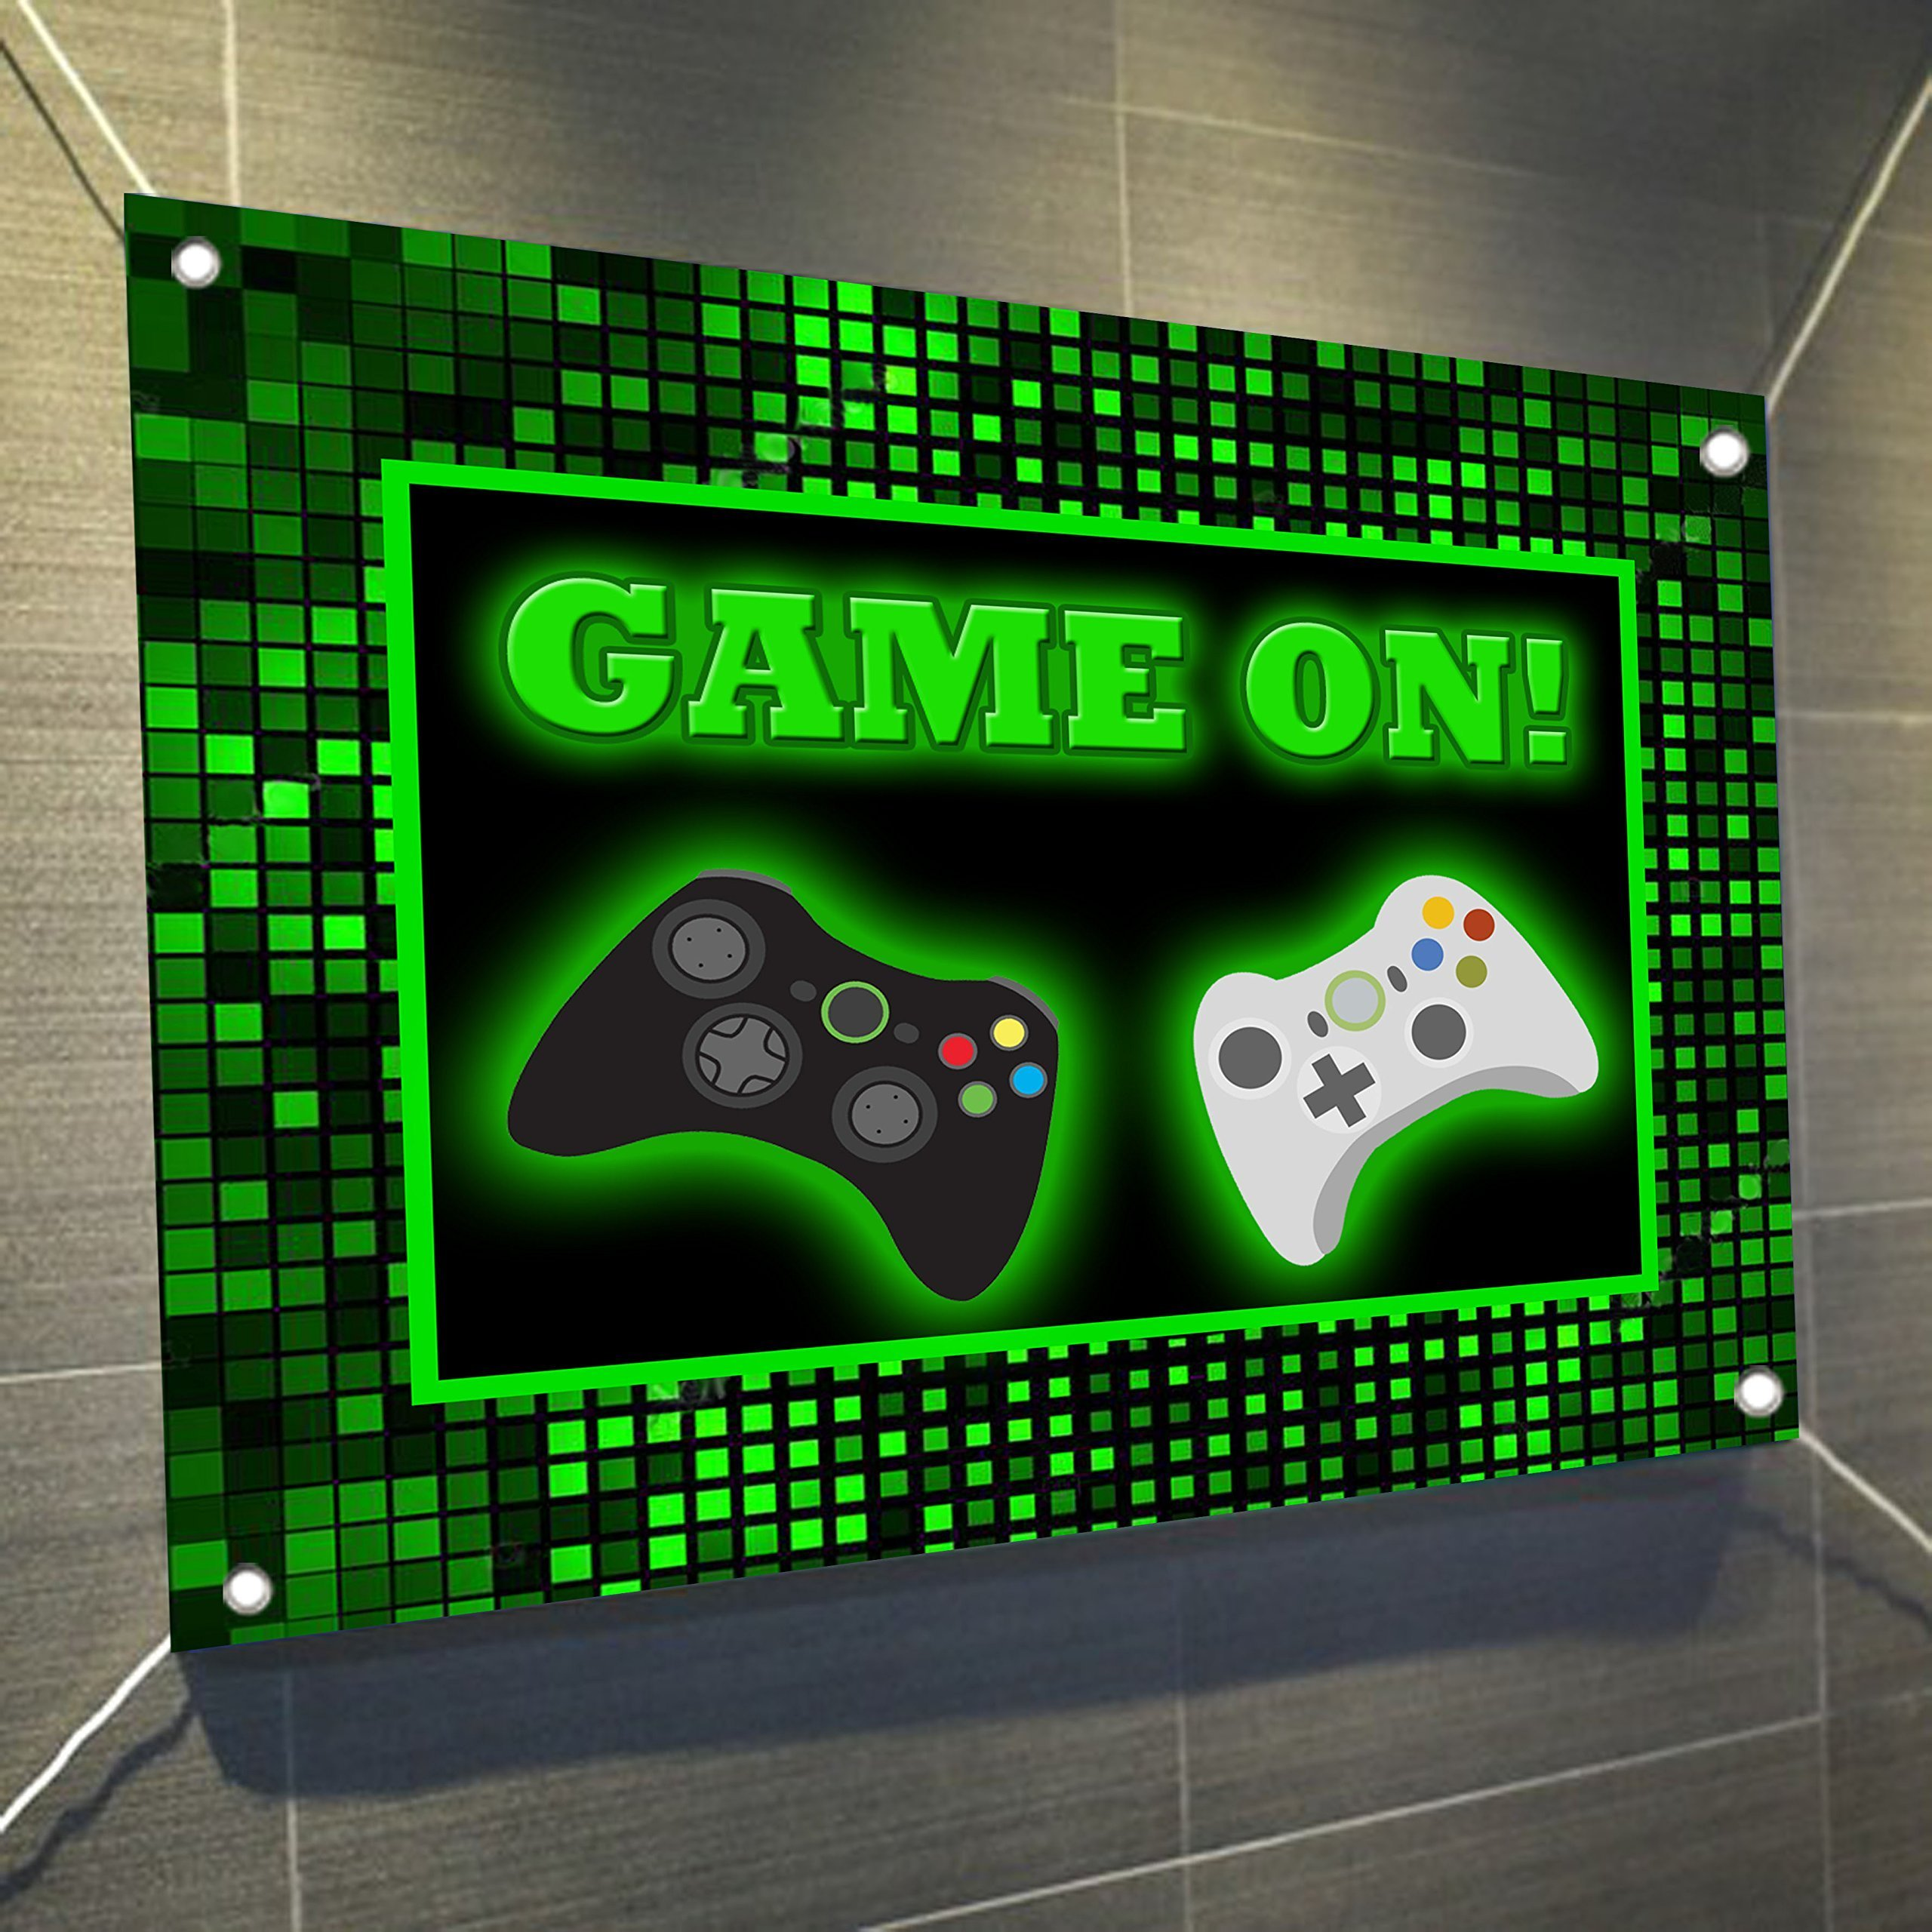 Game On Video Game Controller Large Vinyl Indoor or Outdoor Banner Sign Poster Backdrop, party favor decoration, 30'' x 24'', 2.5' x 2', Video Game Truck Party